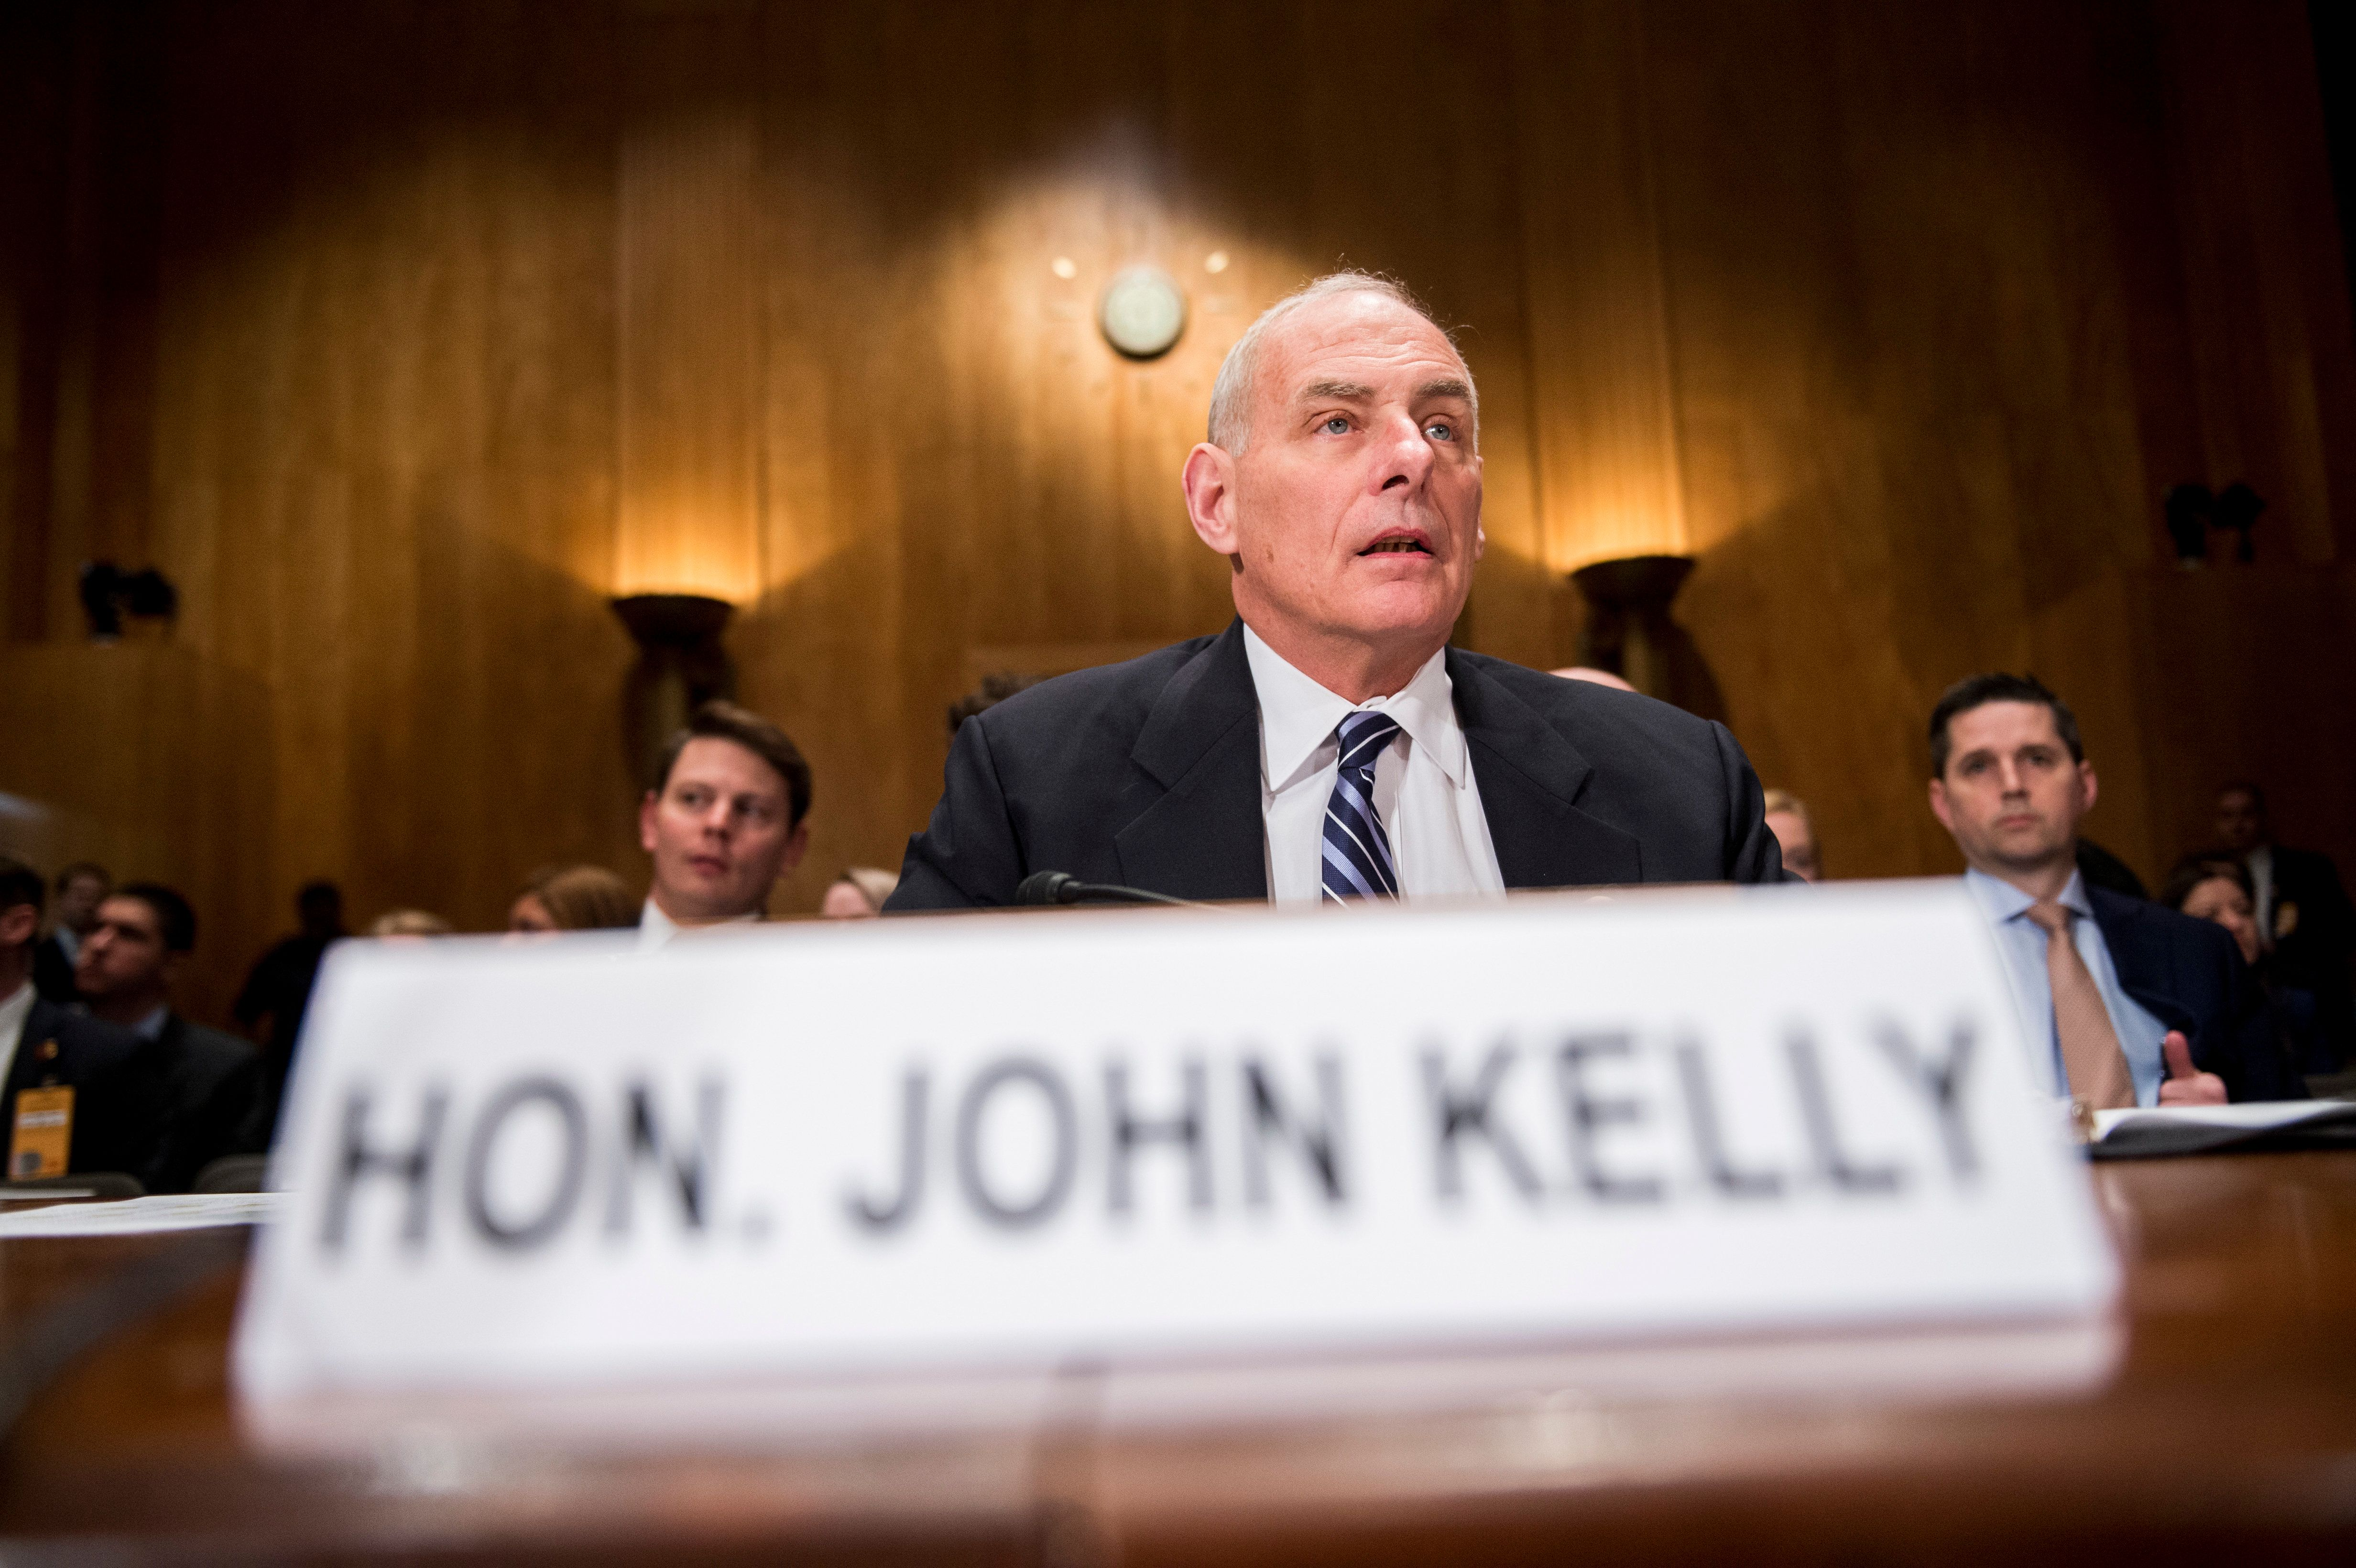 UNITED STATES - APRIL 5: Secretary of Homeland Security John Kelly prepares to testify during the Senate Homeland Security and Governmental Affairs Committee hearing on 'Improving Border Security and Public Safety' on Wednesday, April 5, 2017. (Photo By Bill Clark/CQ Roll Call)